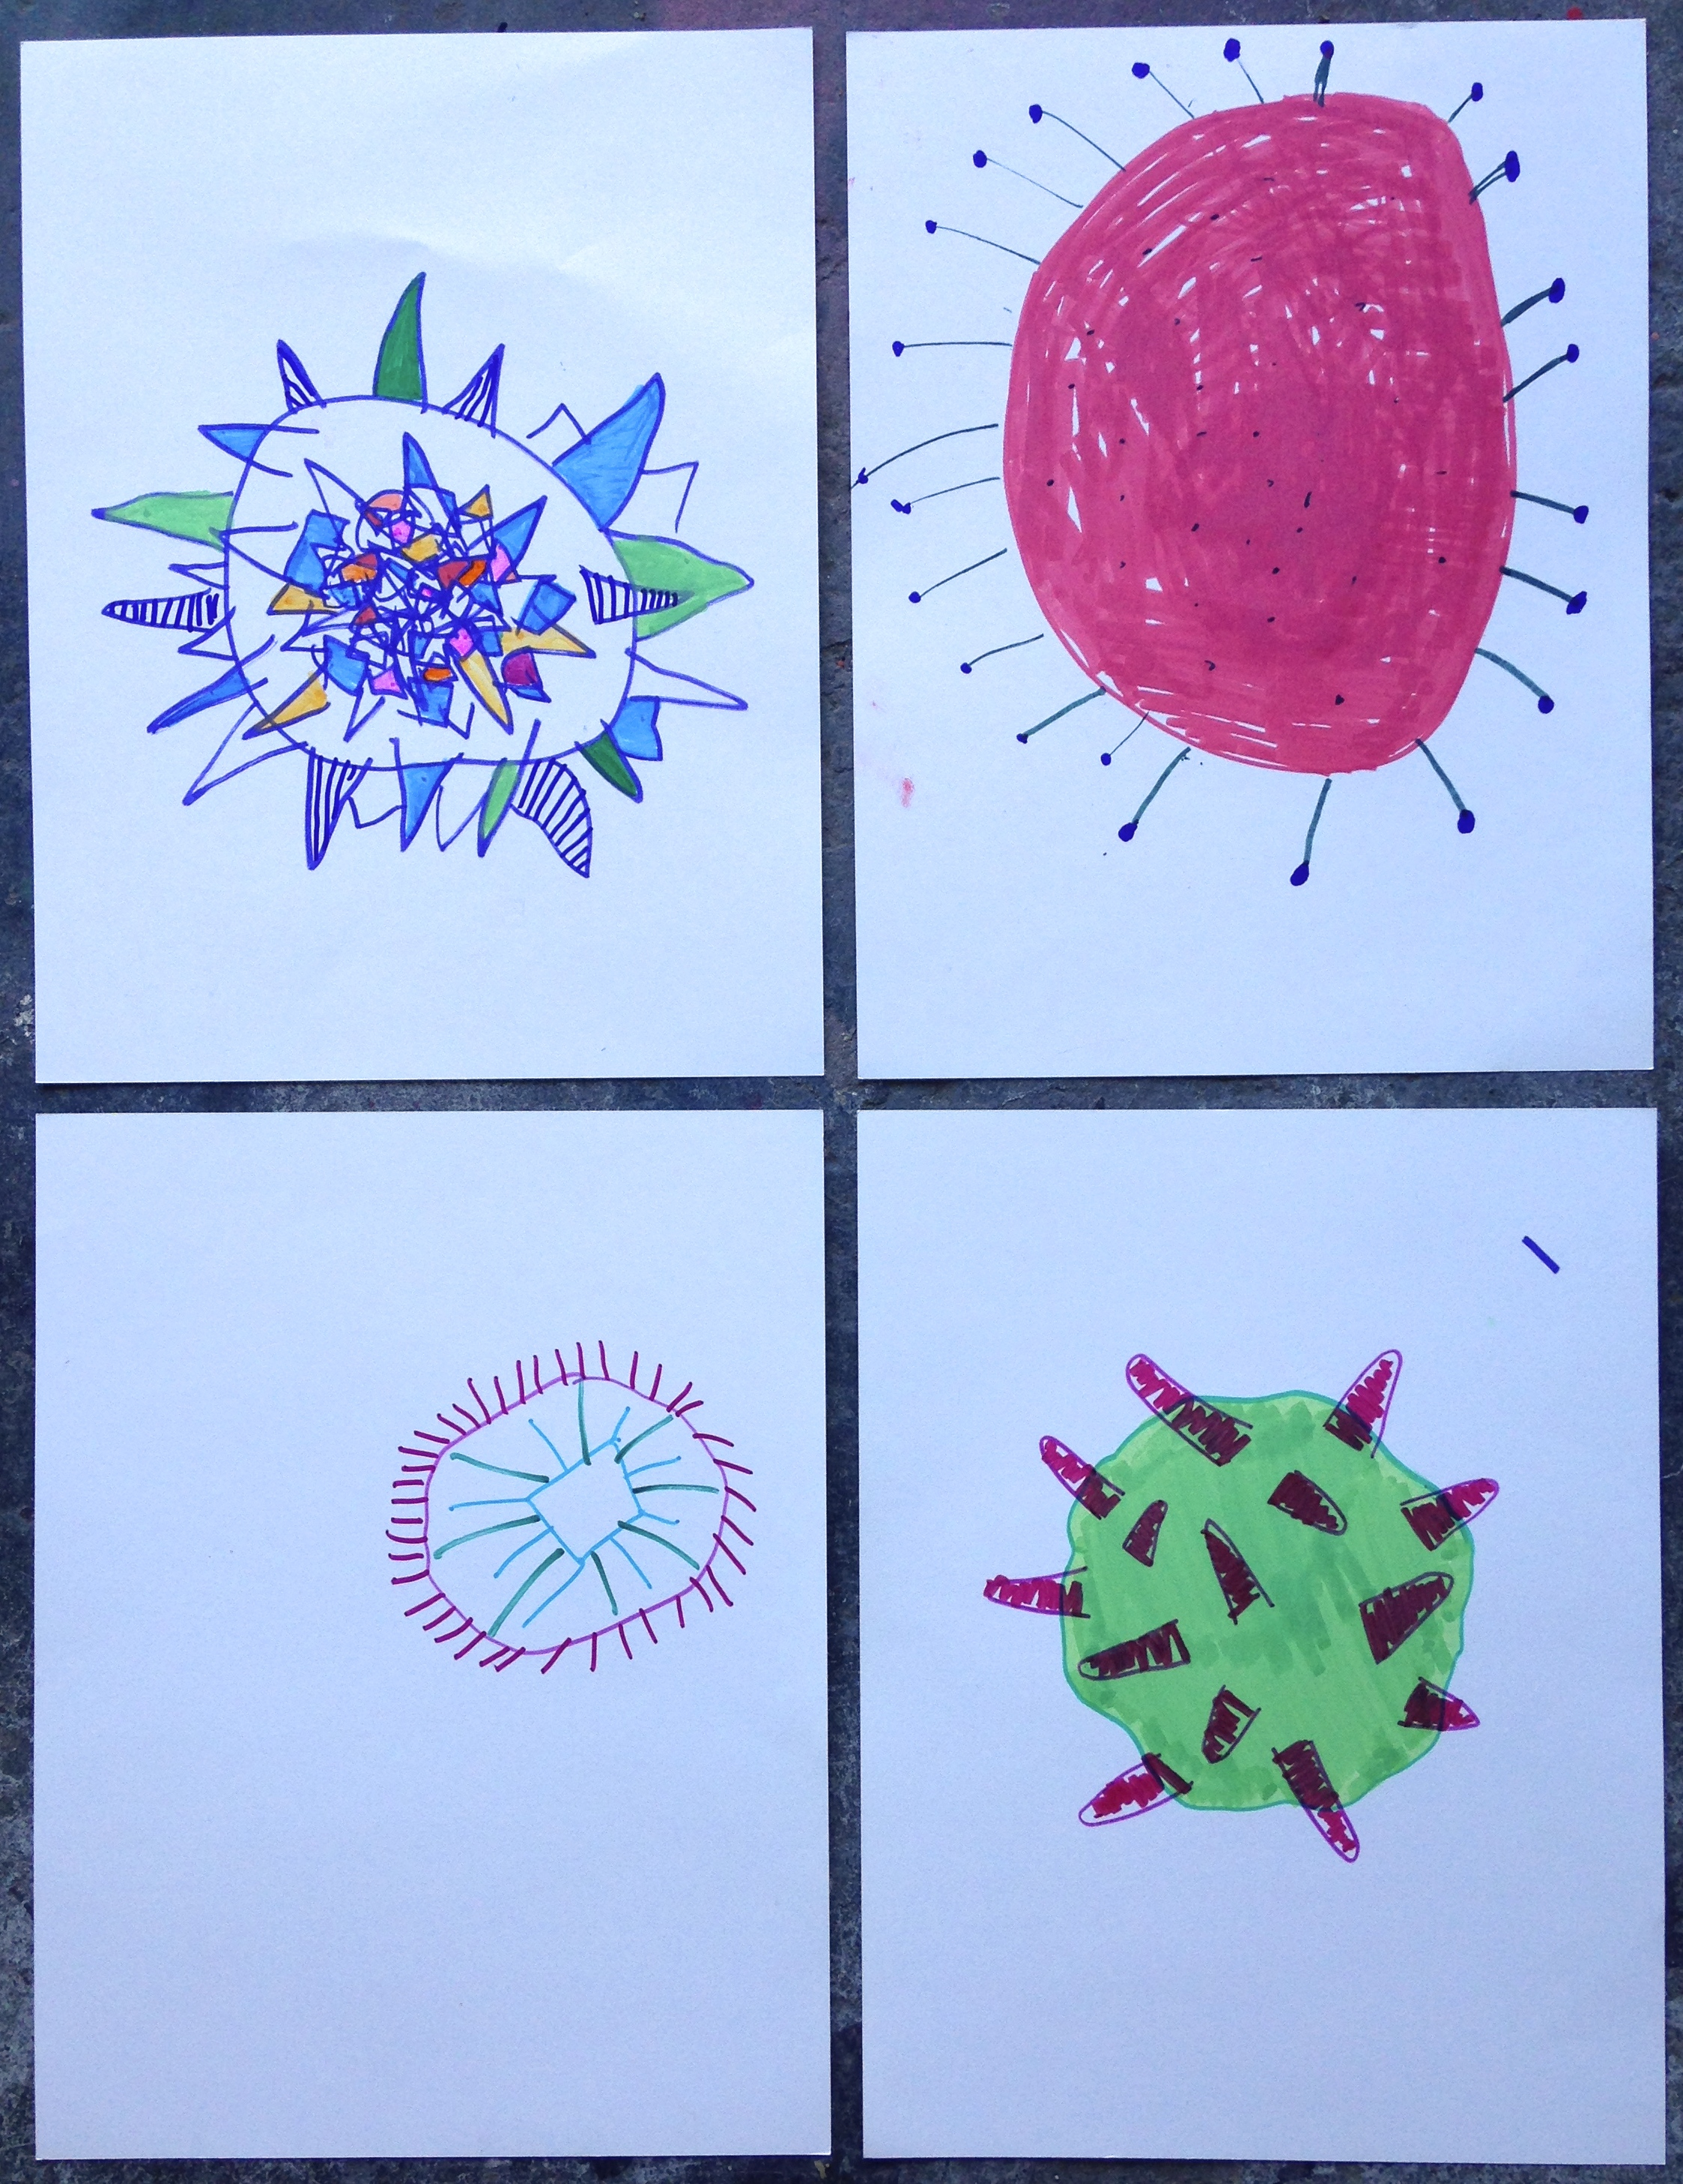 Pollen grain drawings made by visitors to farmers market